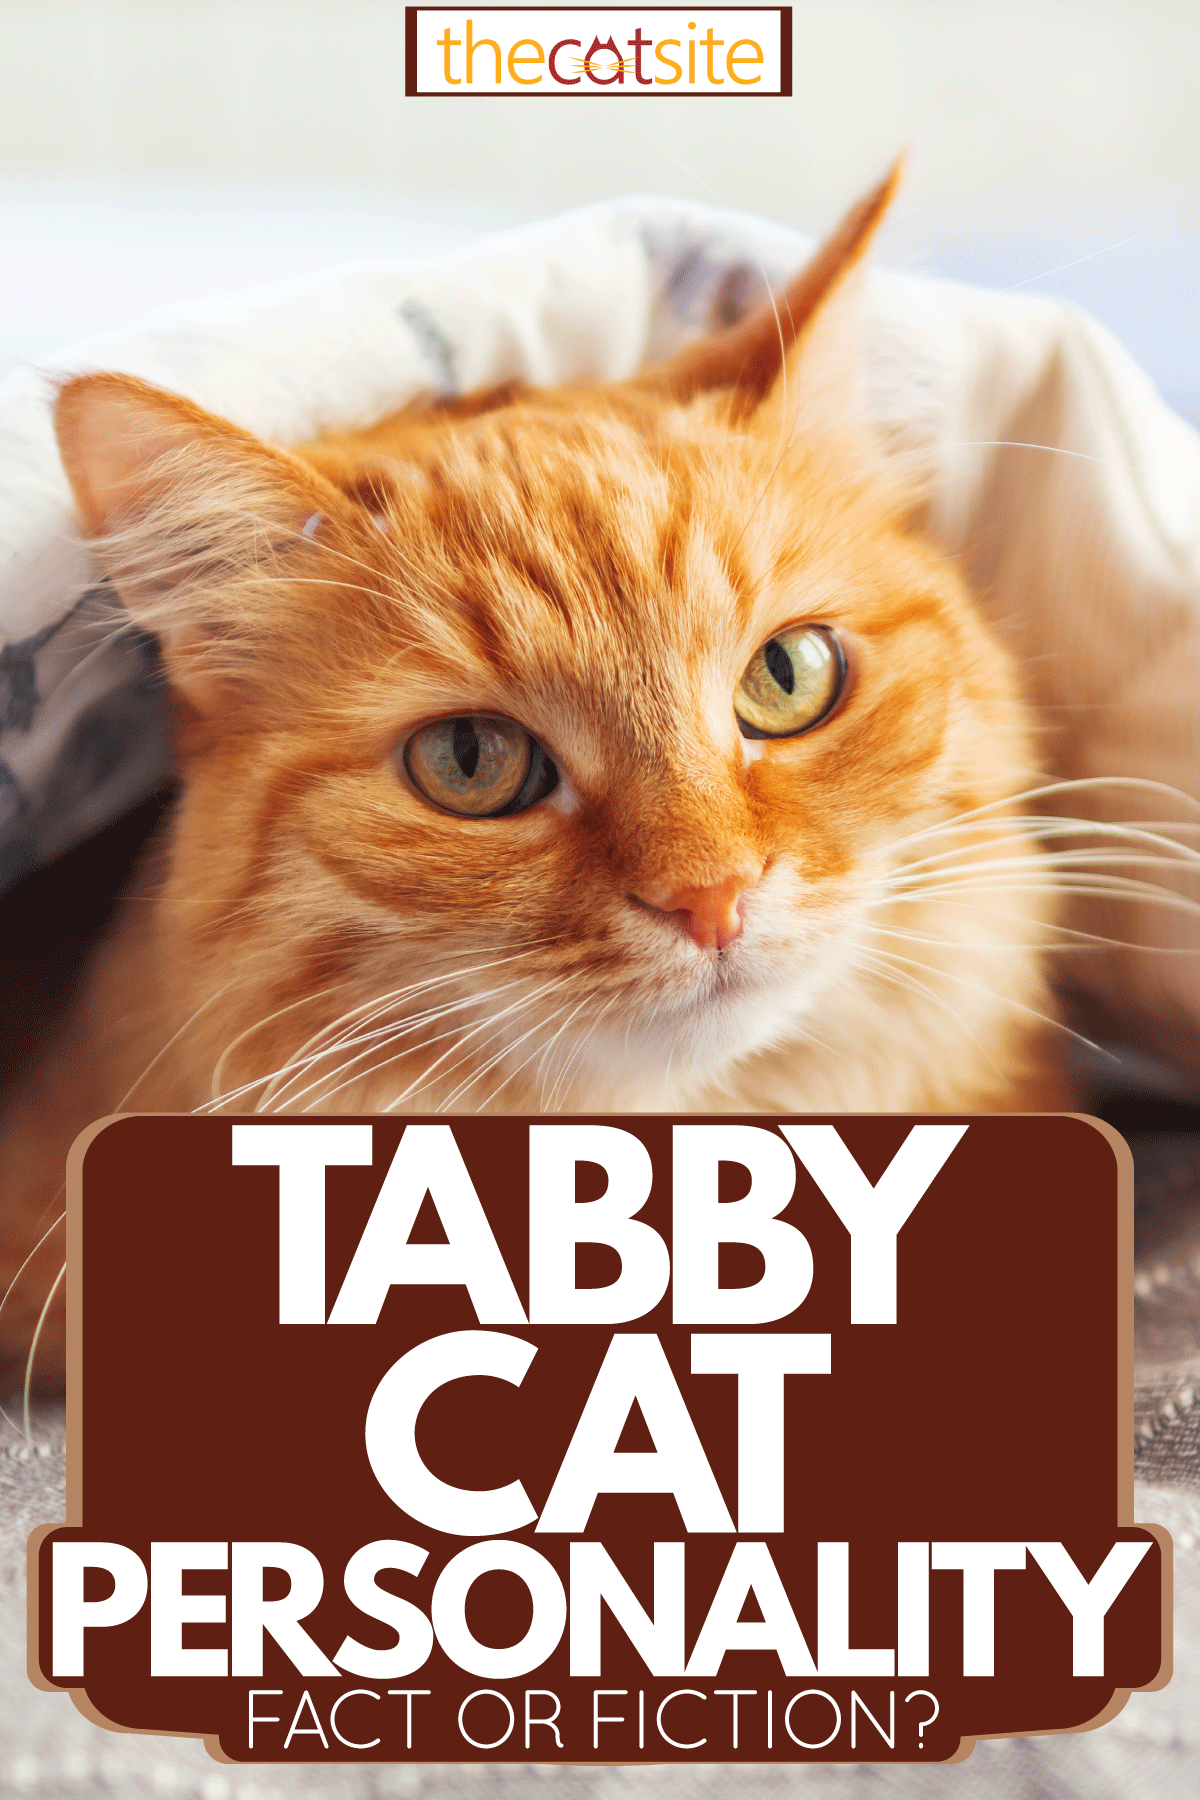 An orange tabby cat peeping out of the blanket, Tabby Cat Personality: Fact or Fiction?